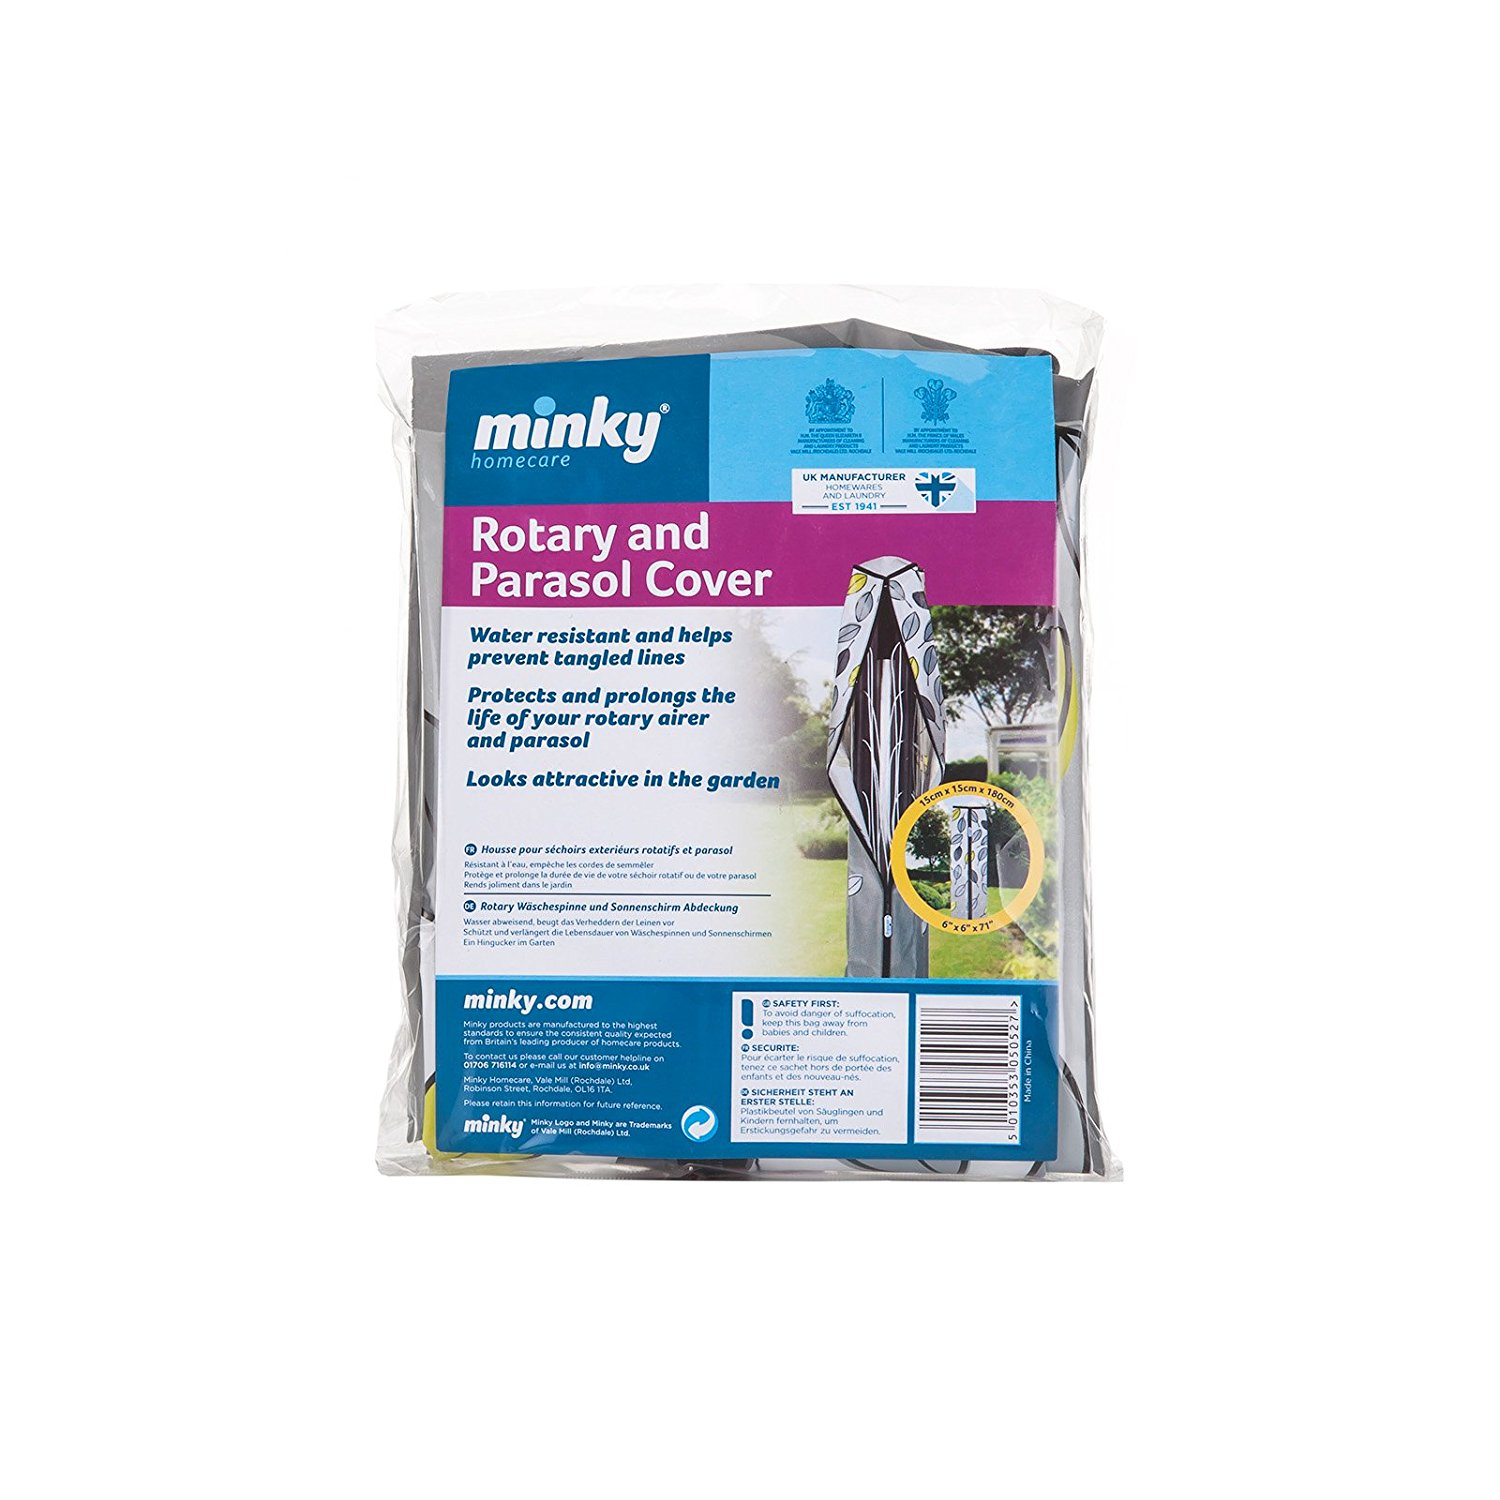 Minky Pebbles Rotary Dryer Cover, Fits Minky Classic, Rotalift and Rotalift Plus